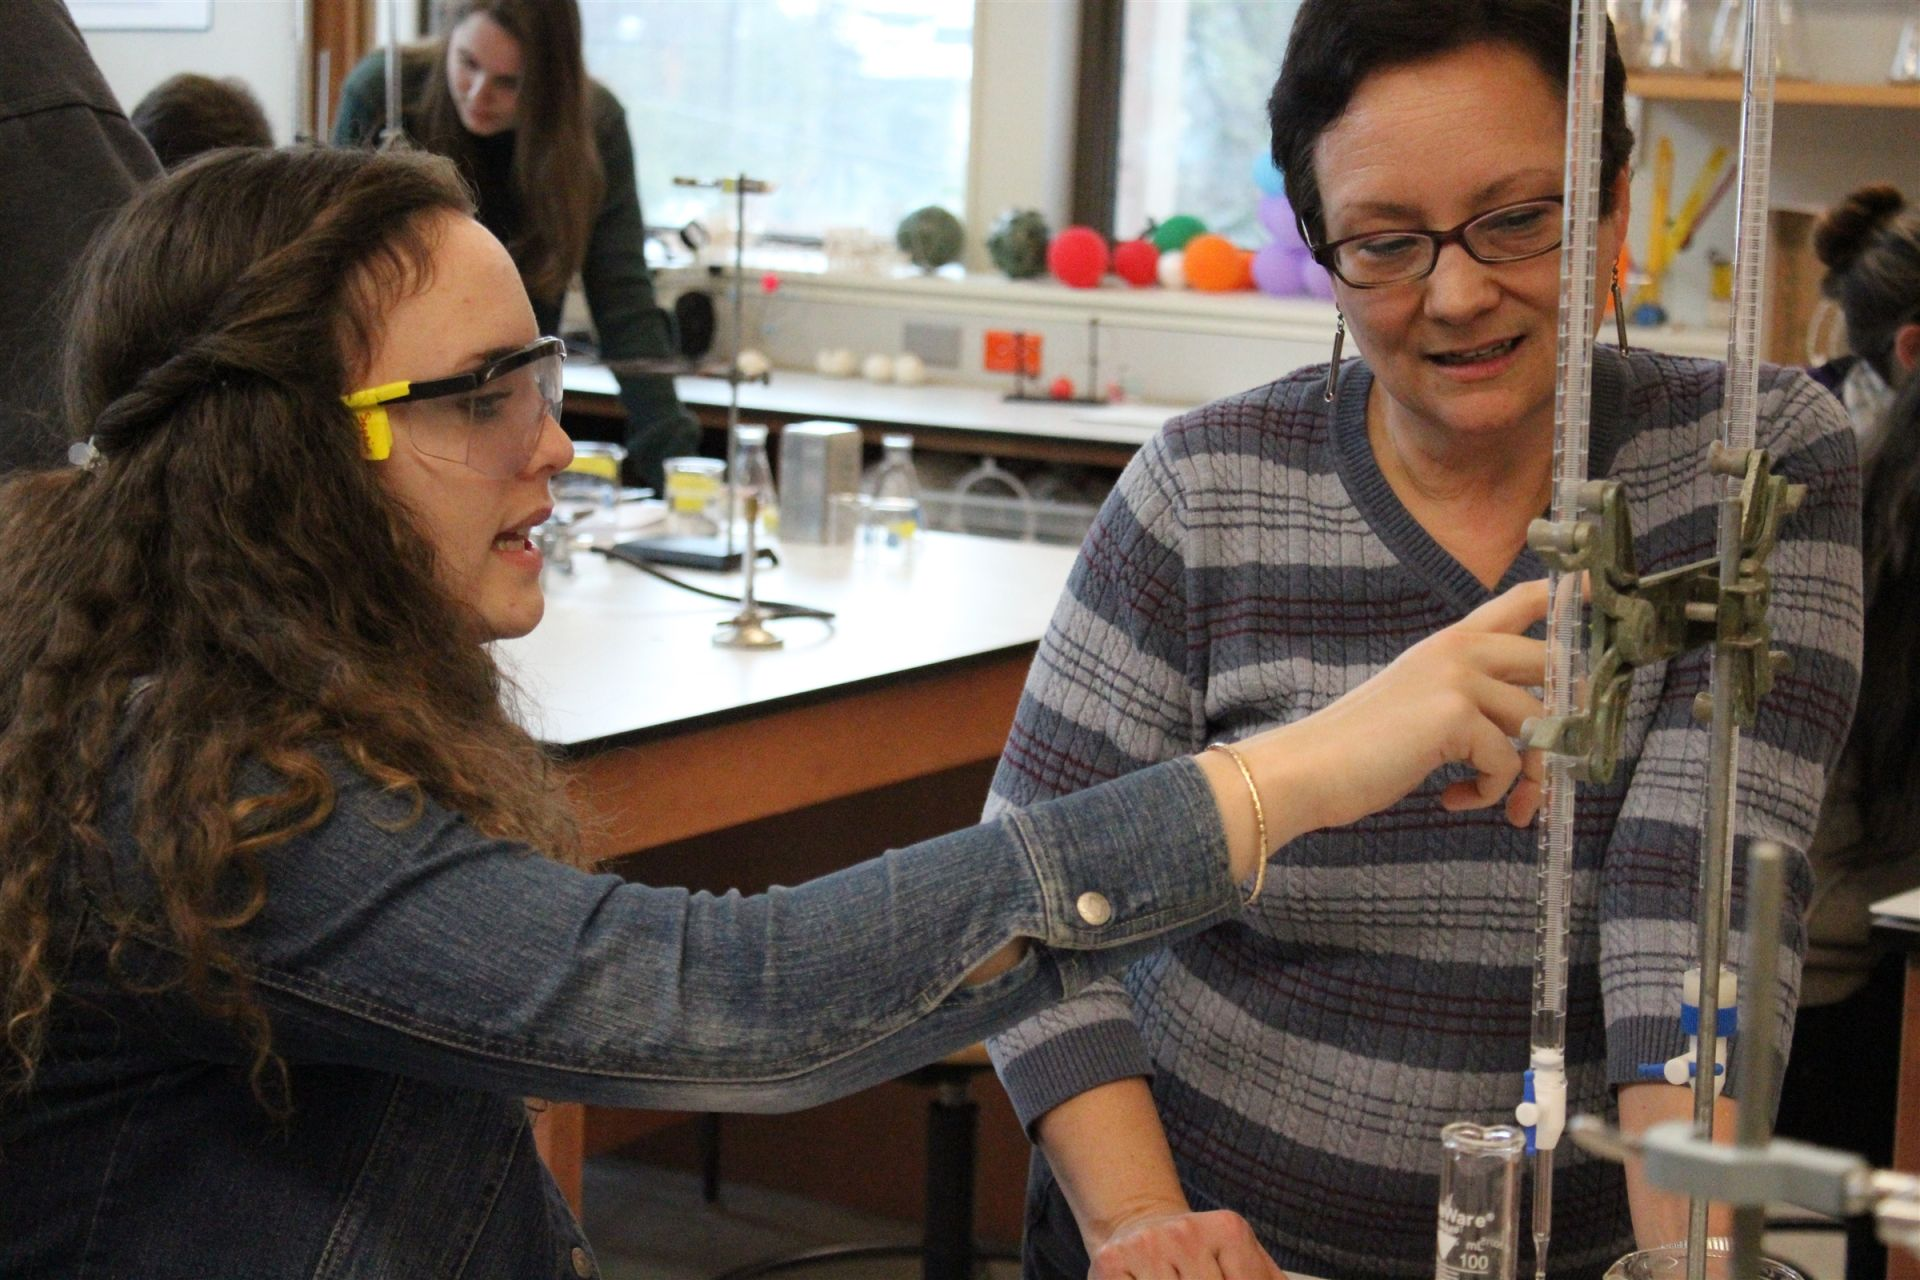 "<br>""After nearly three decades of teaching here, I am continually floored by how smart, thoughtful, creative and caring my fellow faculty and students are.""<br><br><b>Marilyn DelDonno</b><br>Science Teacher"